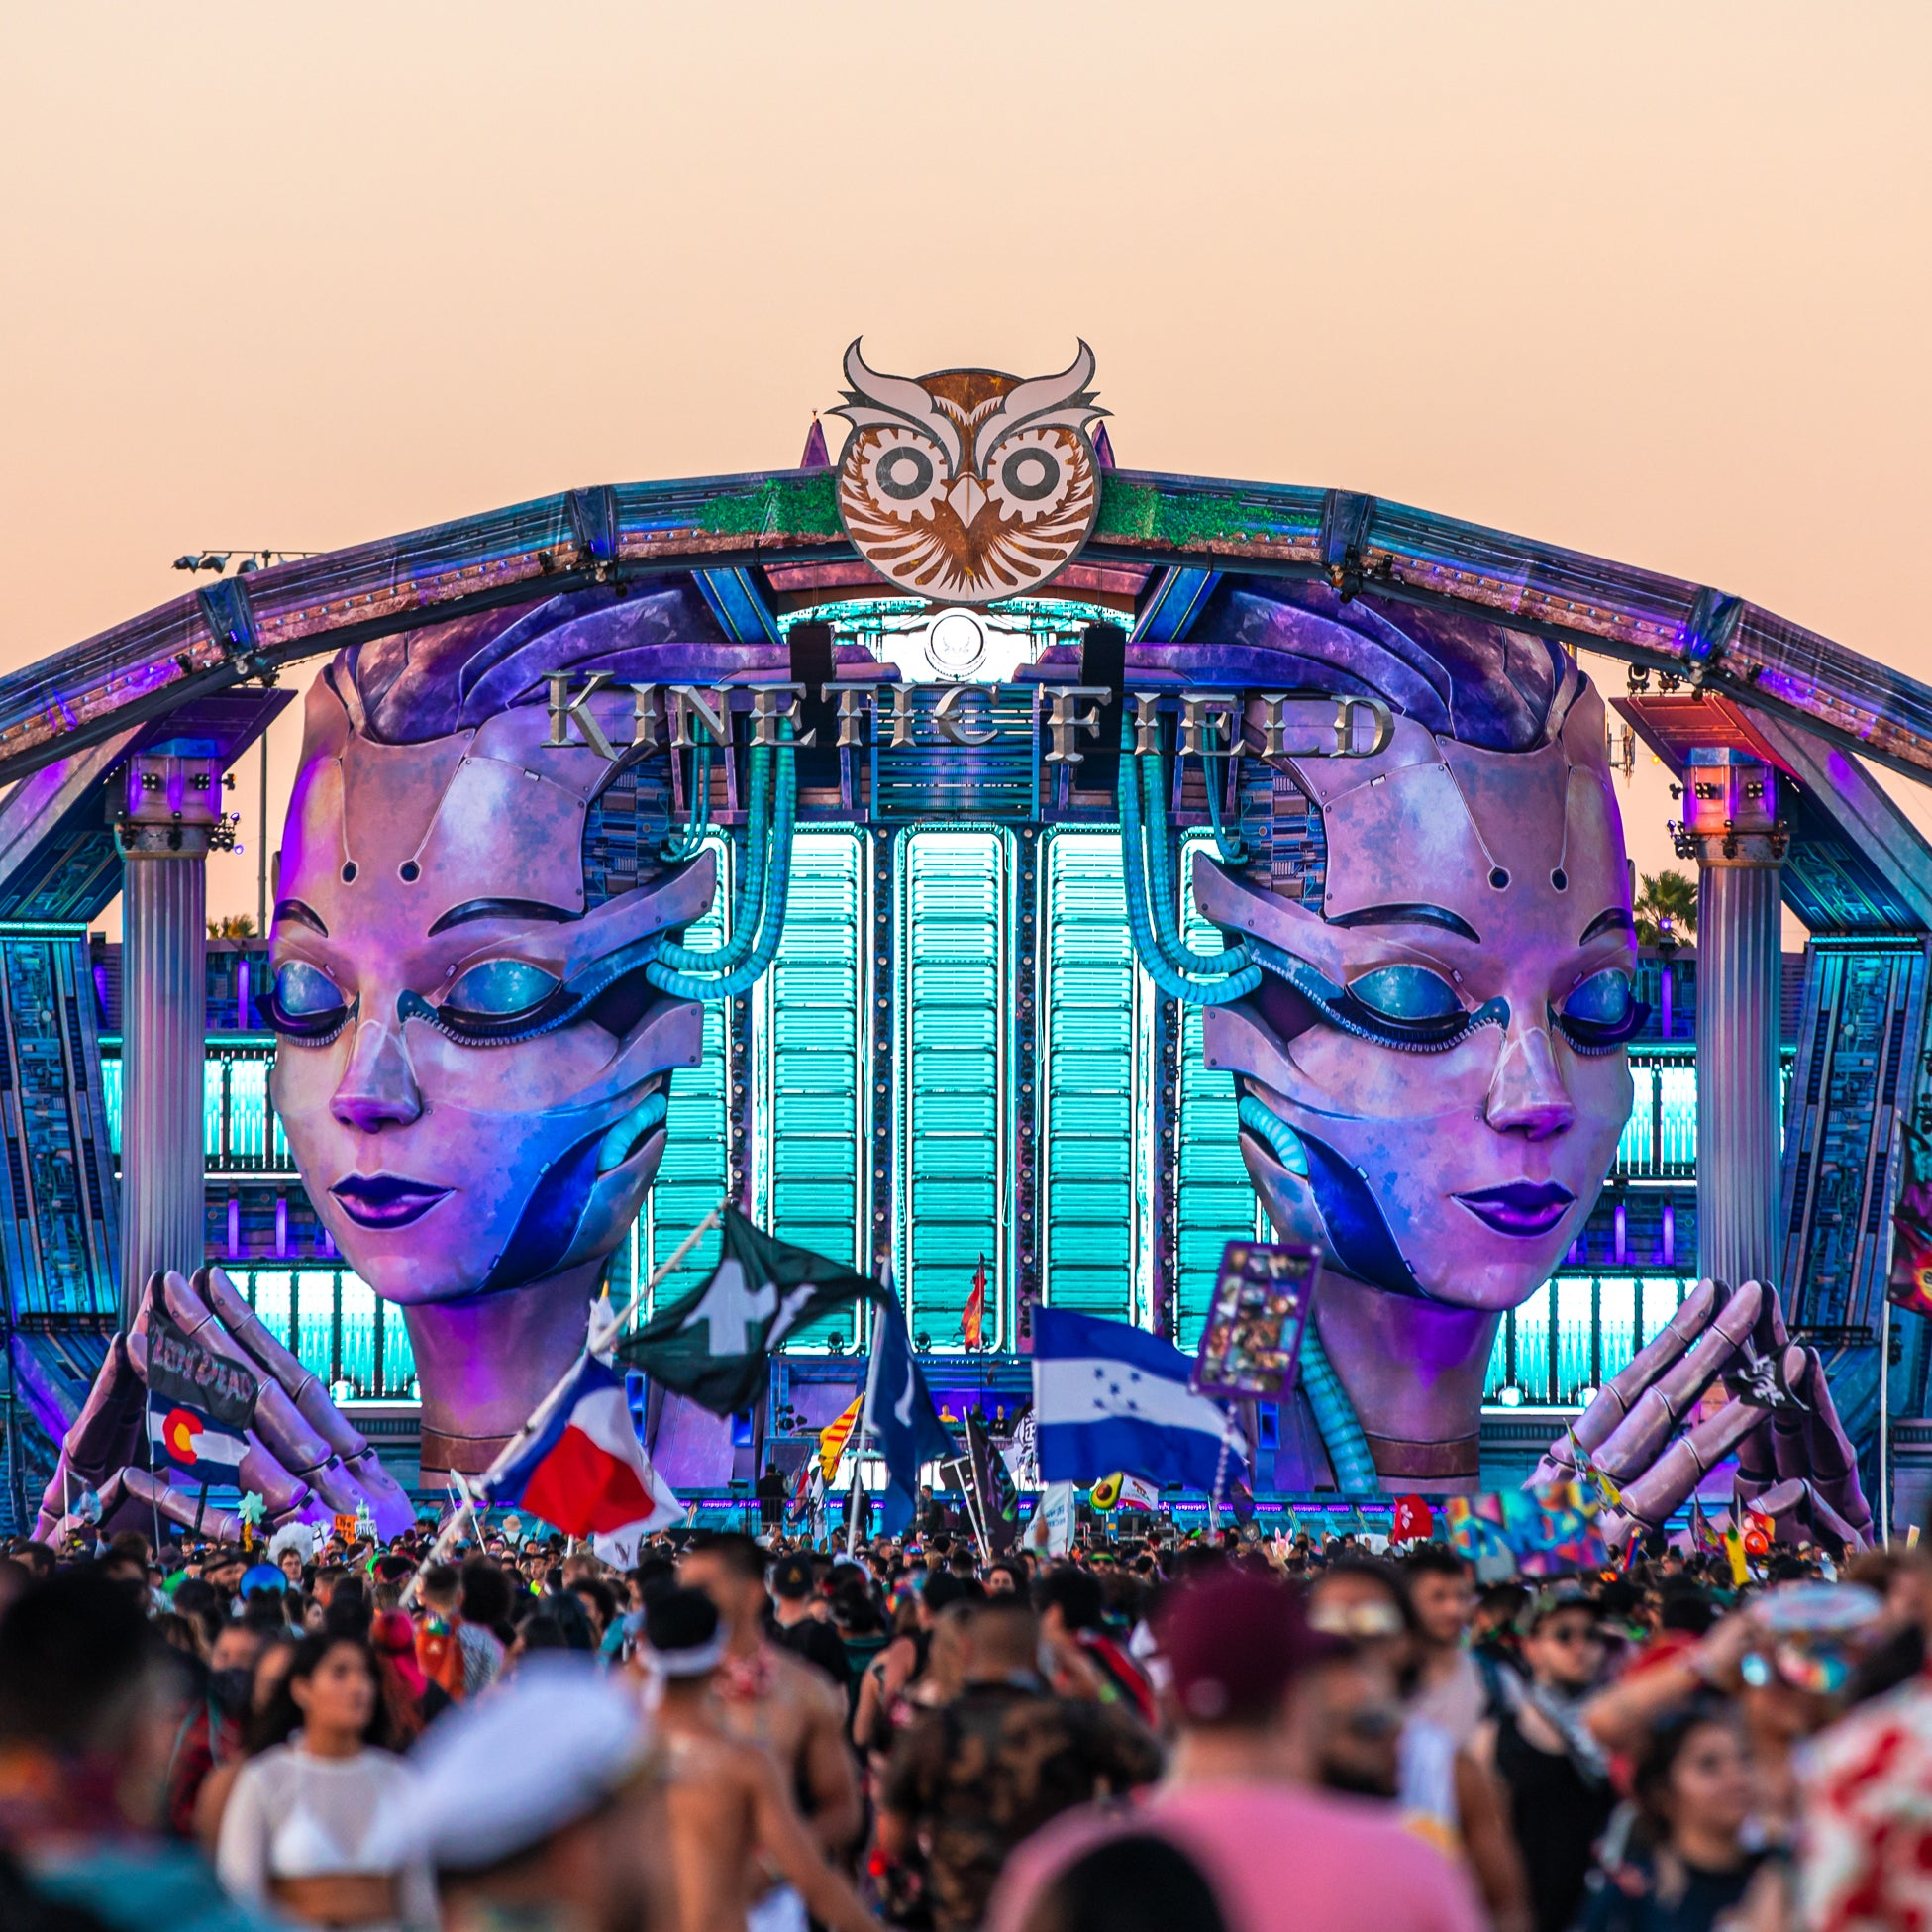 [EDC Highlights] 10 Unforgettable Memories From EDC Las Vegas 2019